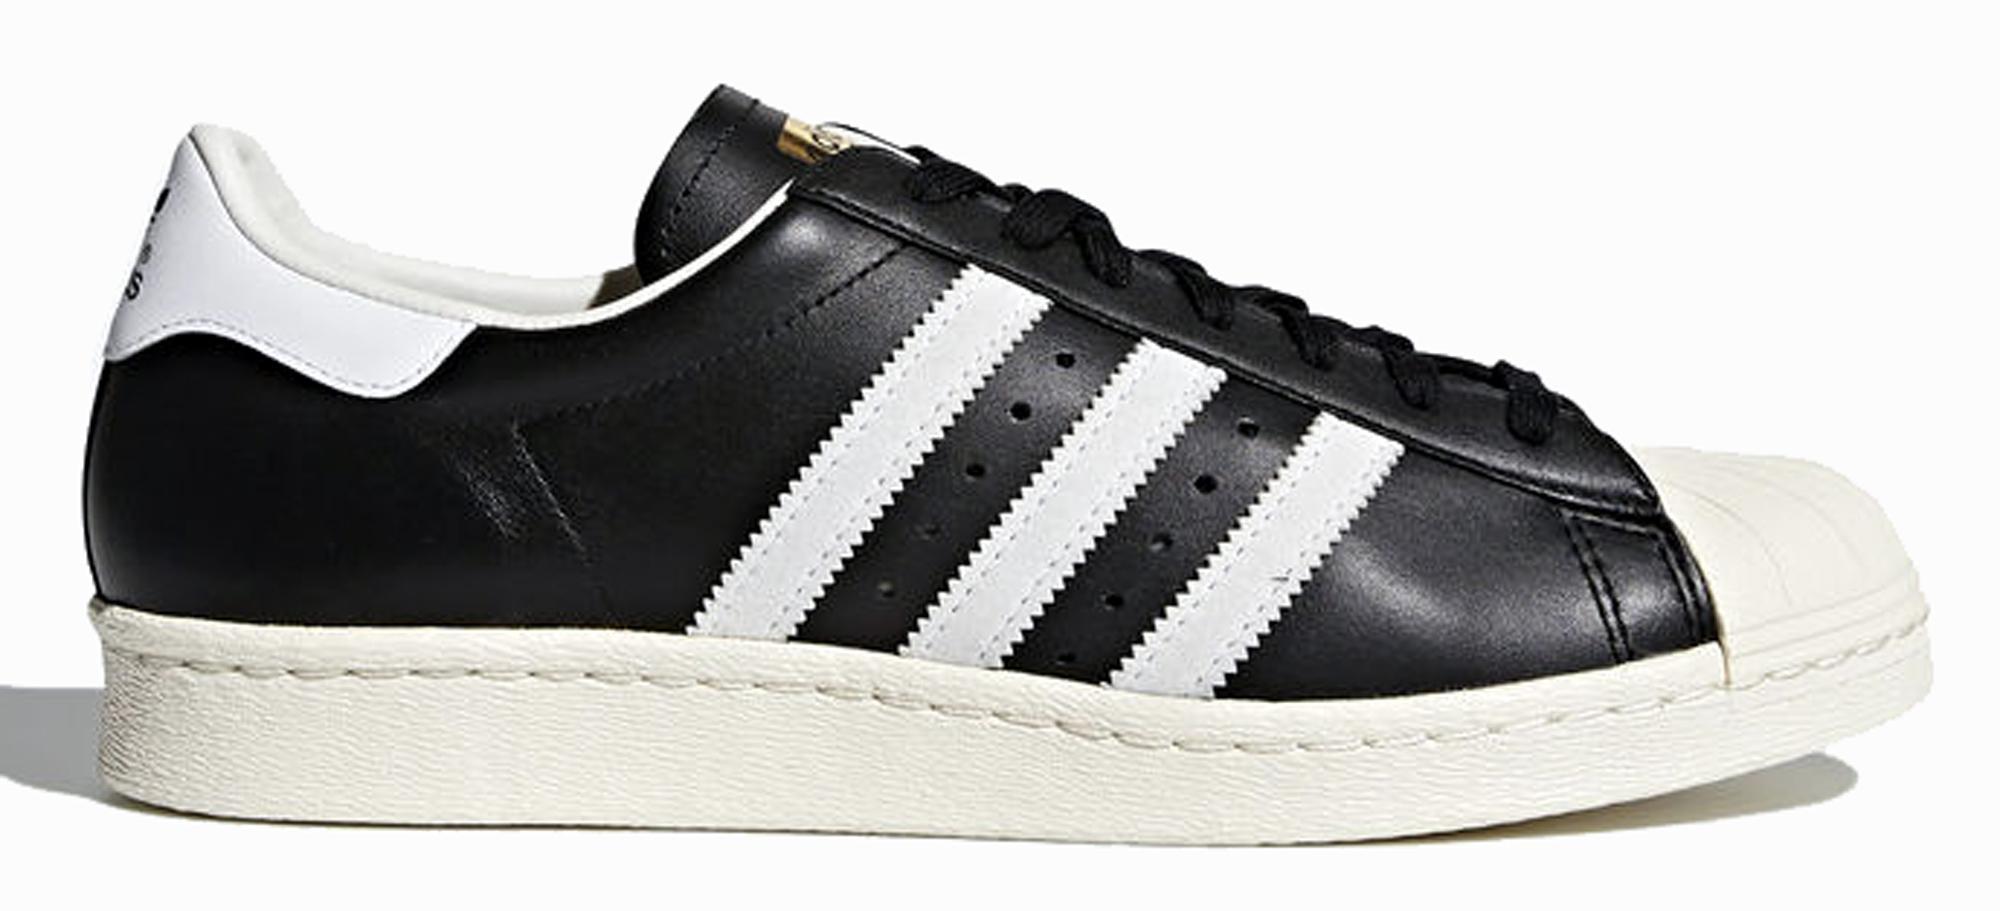 Sneakers Adidas Superstar 80s G61069M (gum outsole) scarpe uomo in pelle nera/bianca